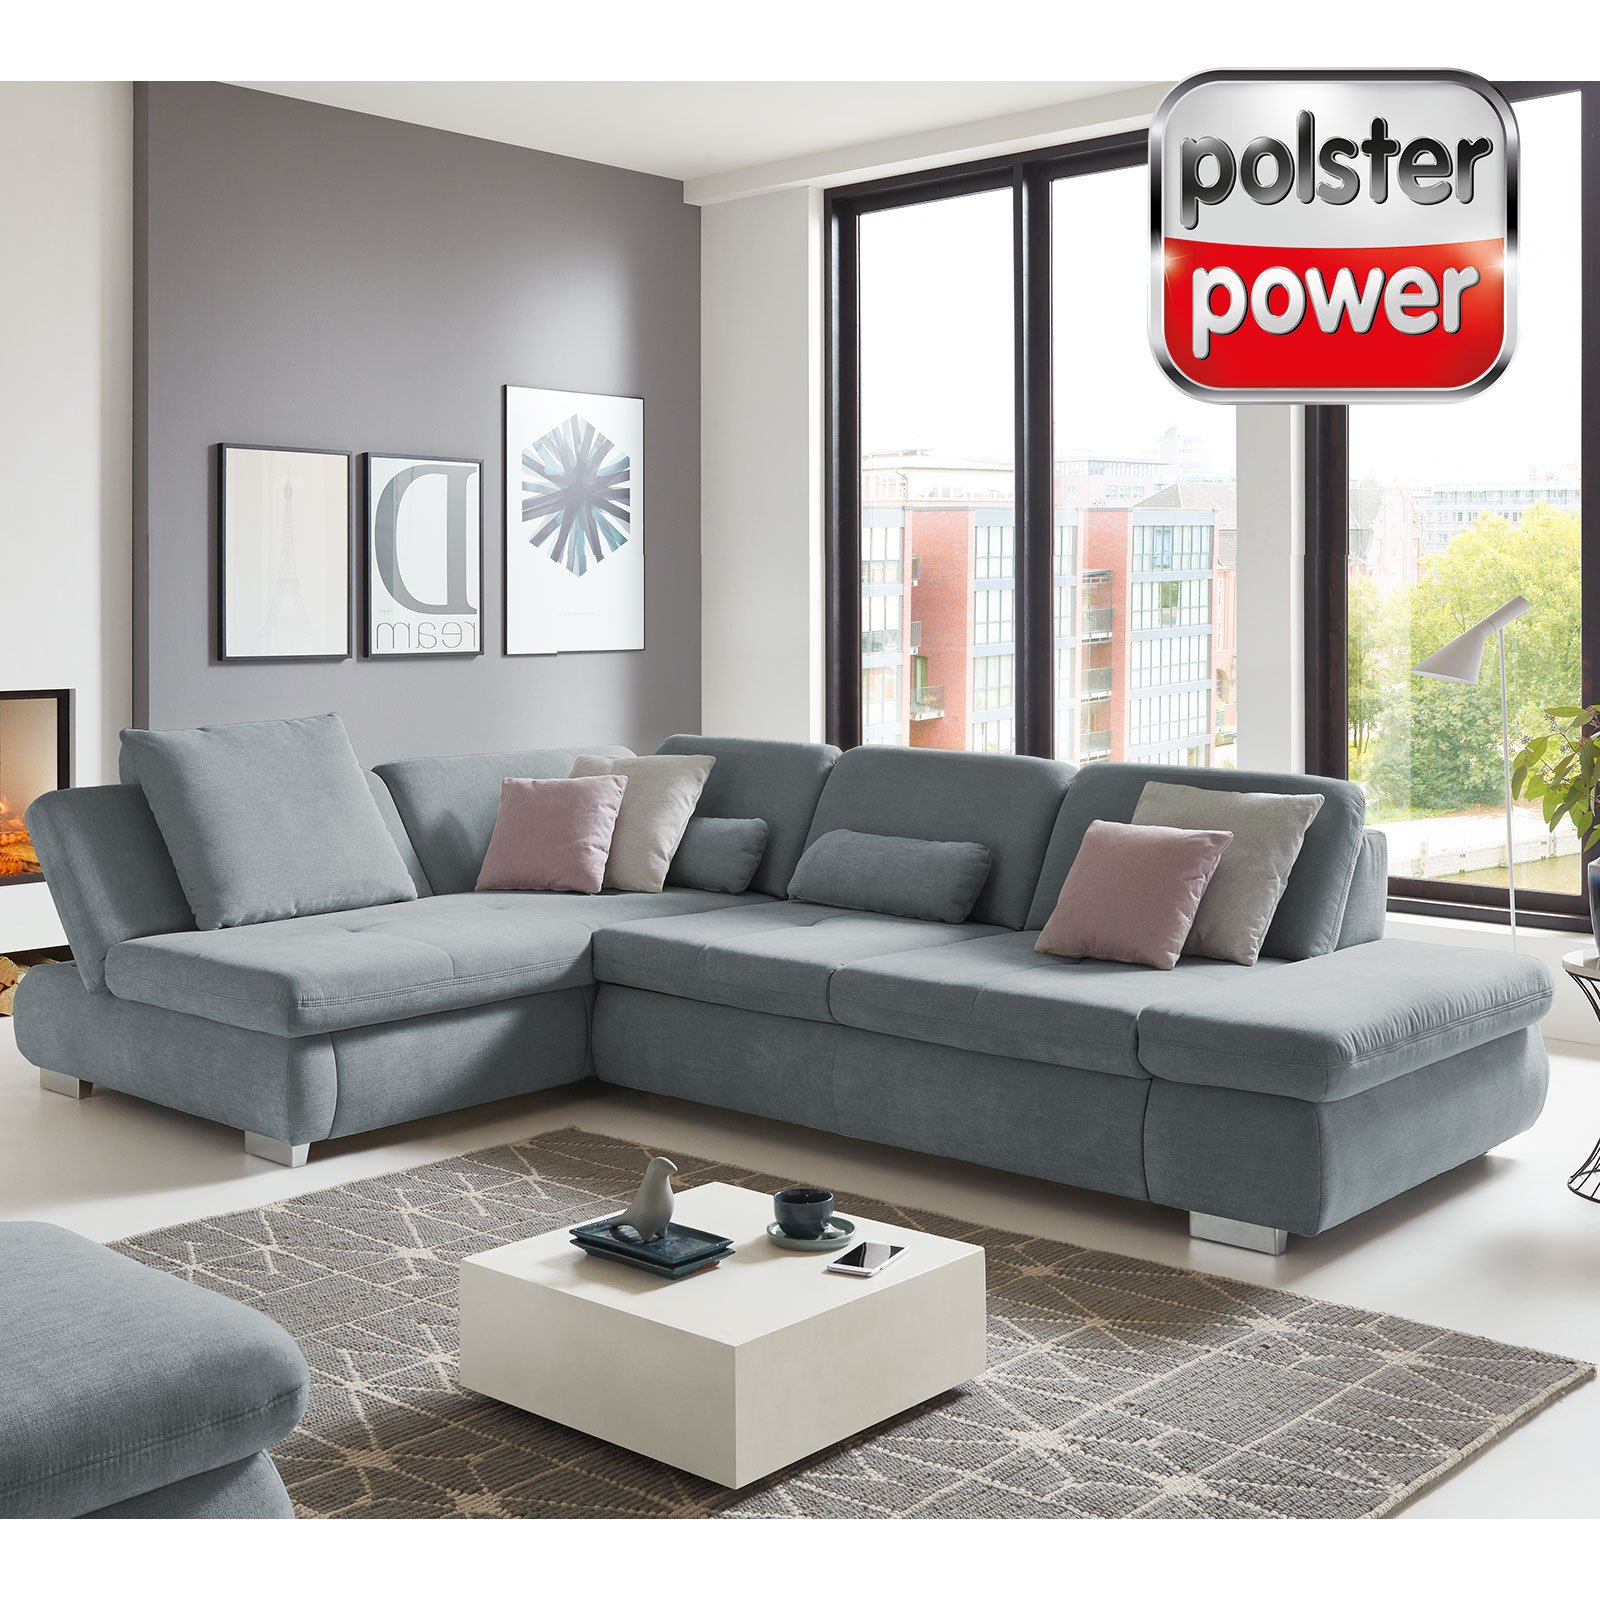 polsterpower Ecksofa - hellblau - Basismodell - Longchair links